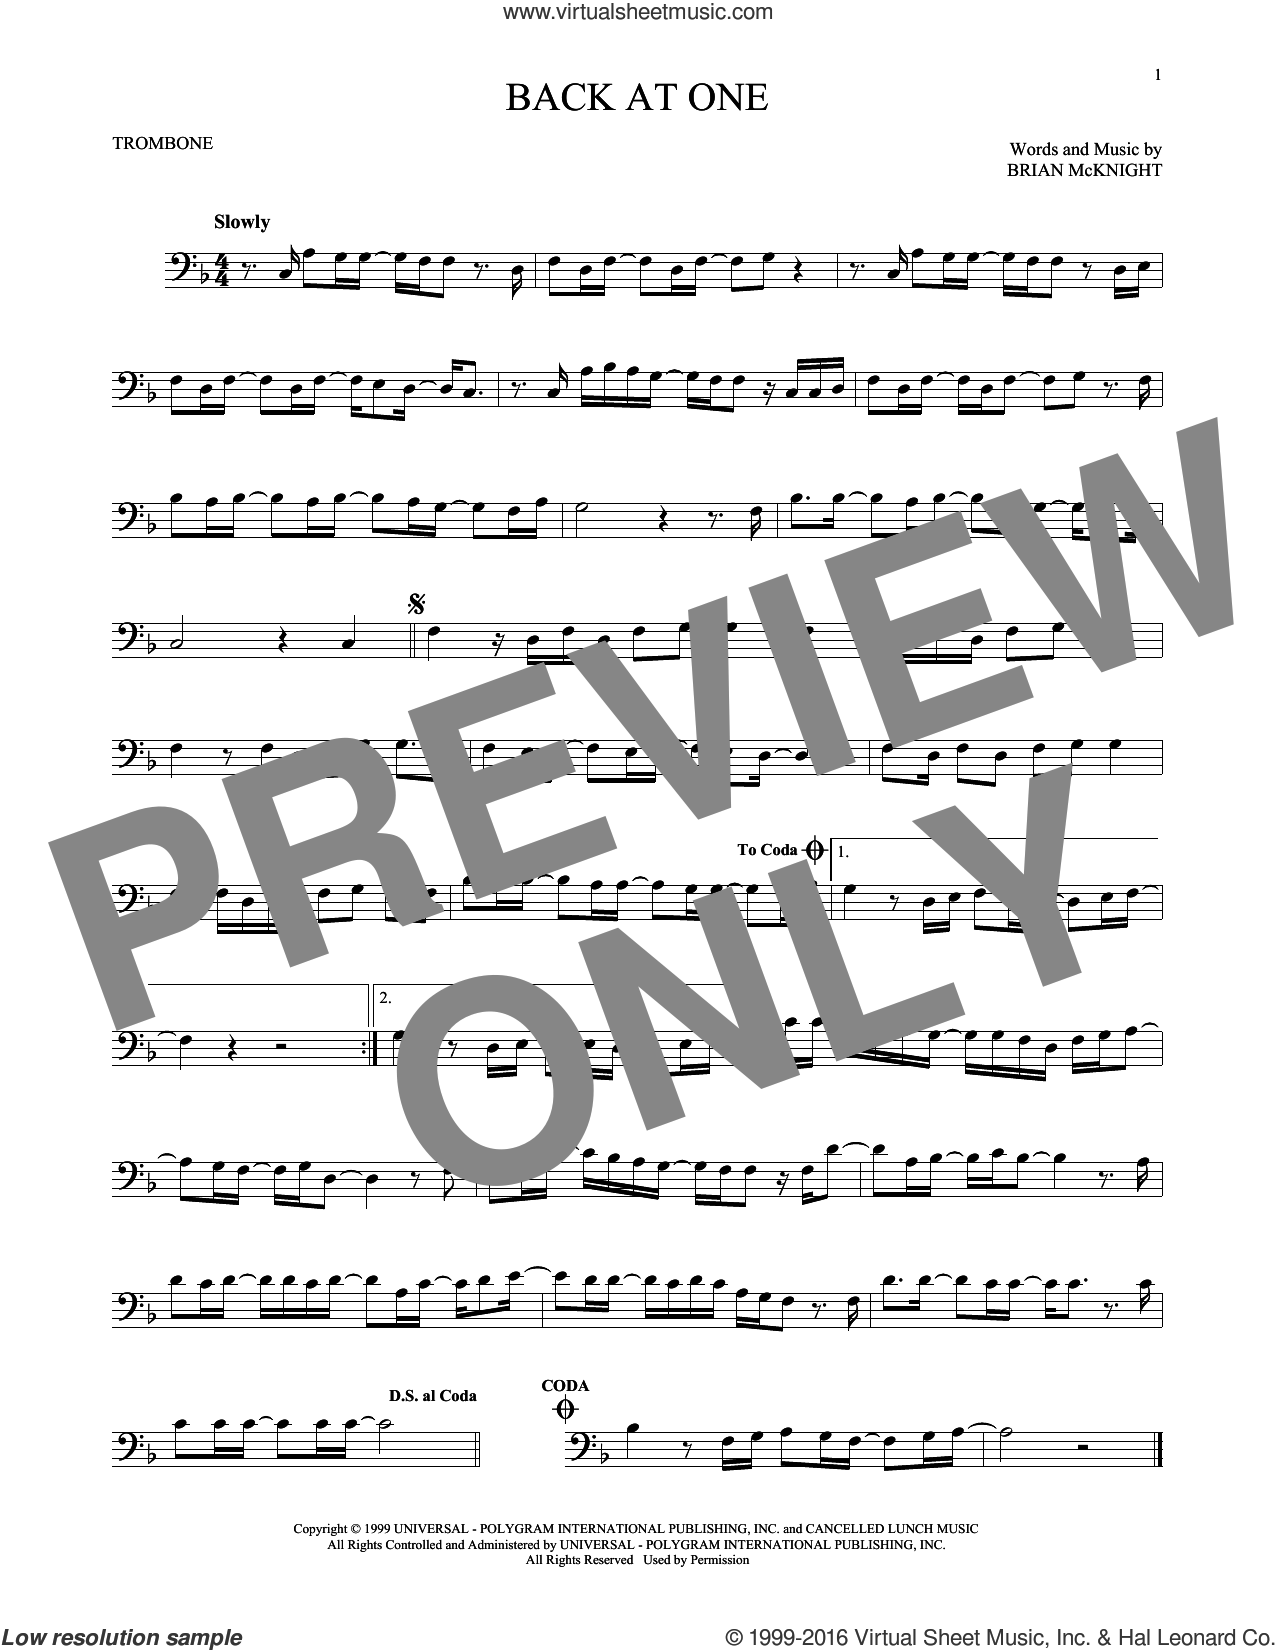 Back At One sheet music for trombone solo by Brian McKnight, intermediate skill level